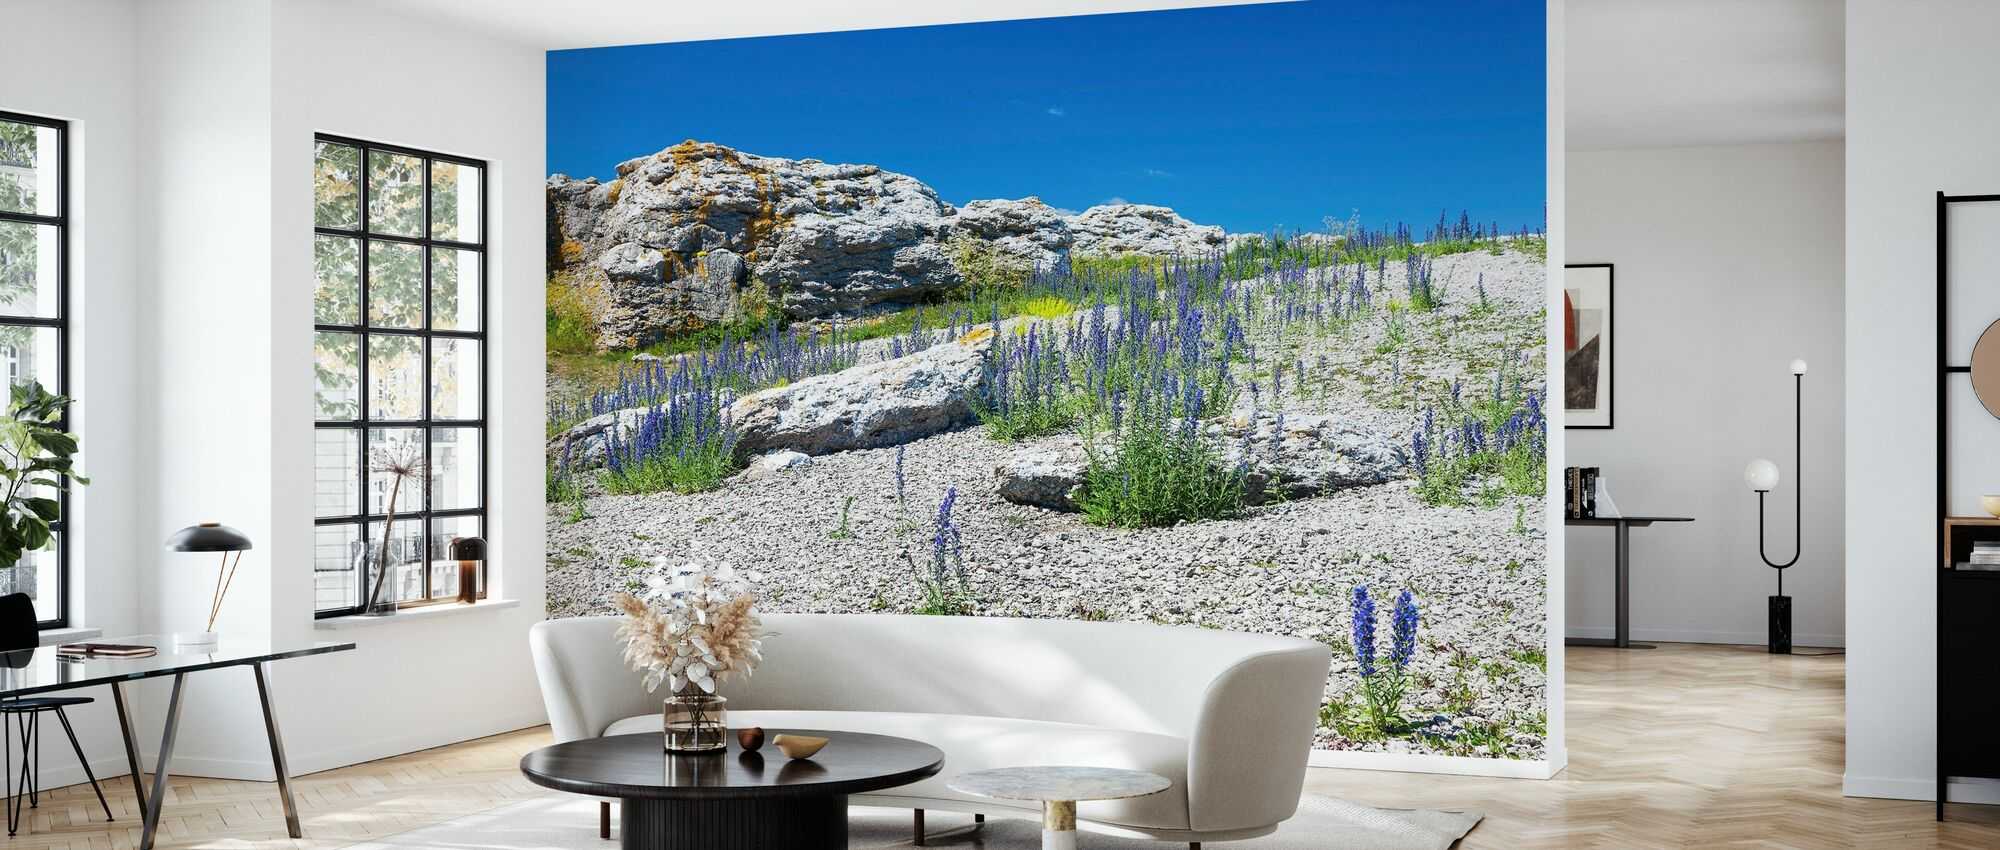 Rock Landscape in Gotland - Wallpaper - Living Room